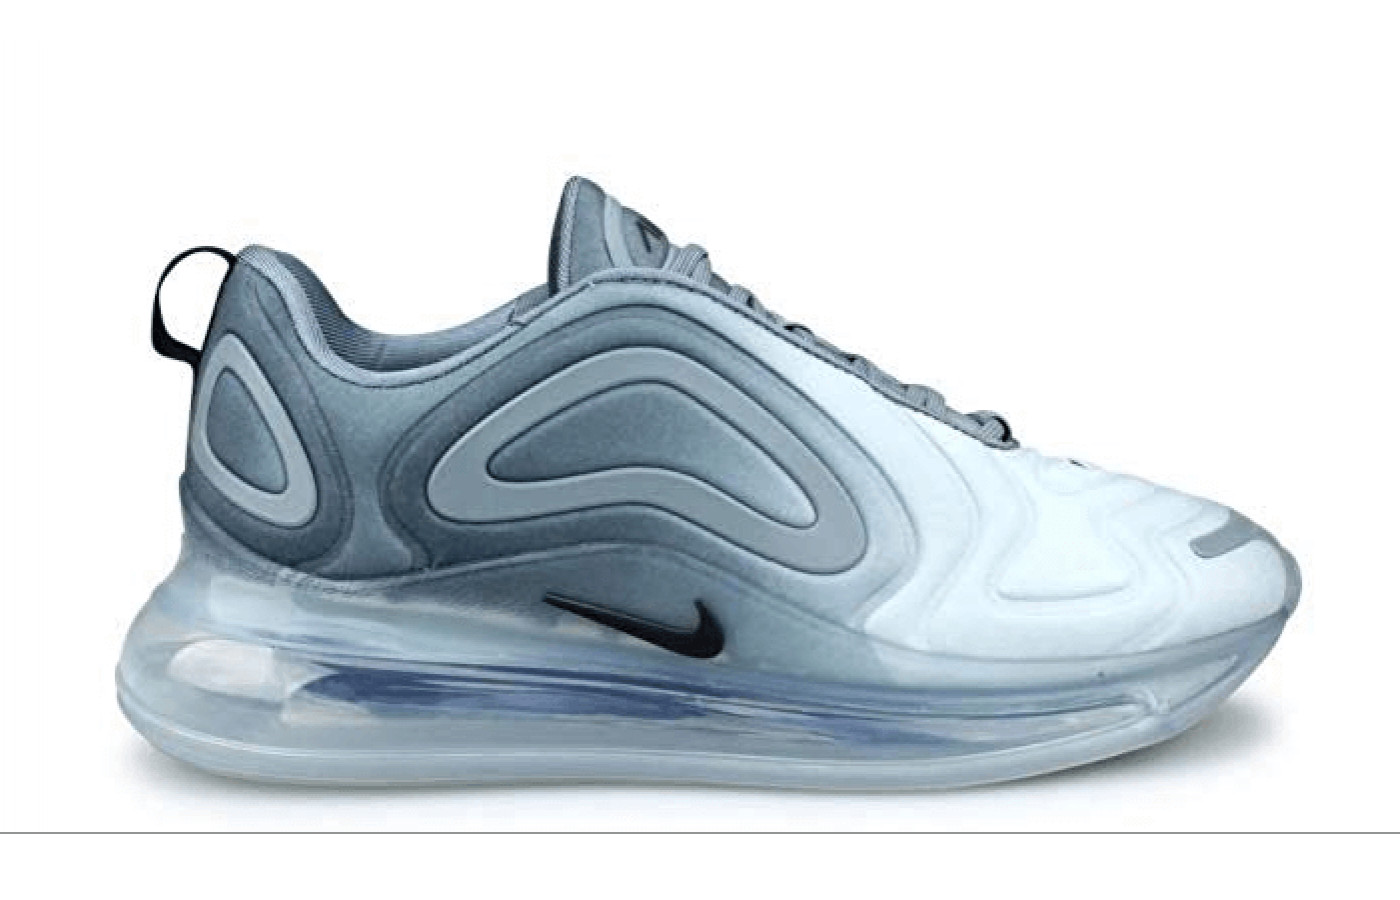 superior quality 28672 72a9c The Air Max 720 is available in multiple colorways.